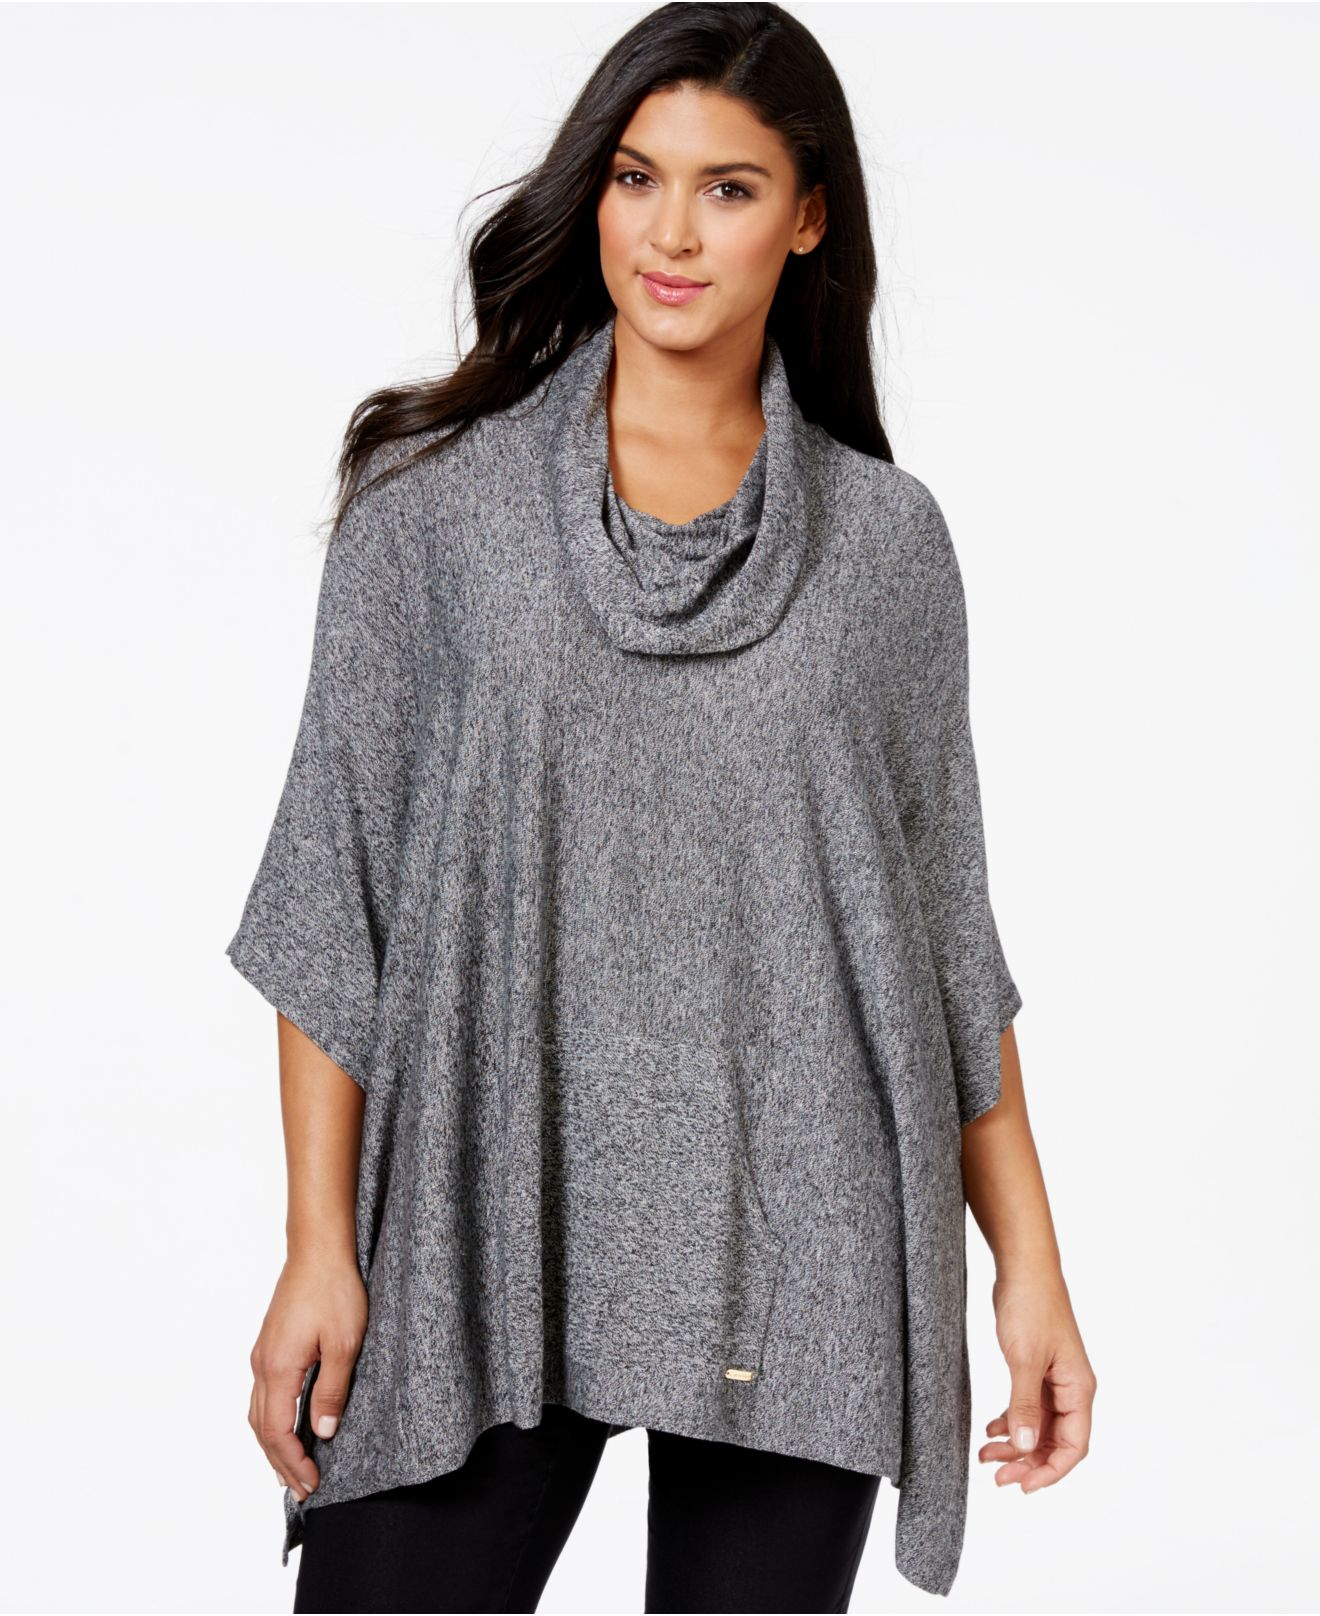 21e0d553d2 Calvin Klein Plus Size Marled Cowl-neck Poncho Sweater in Gray - Lyst